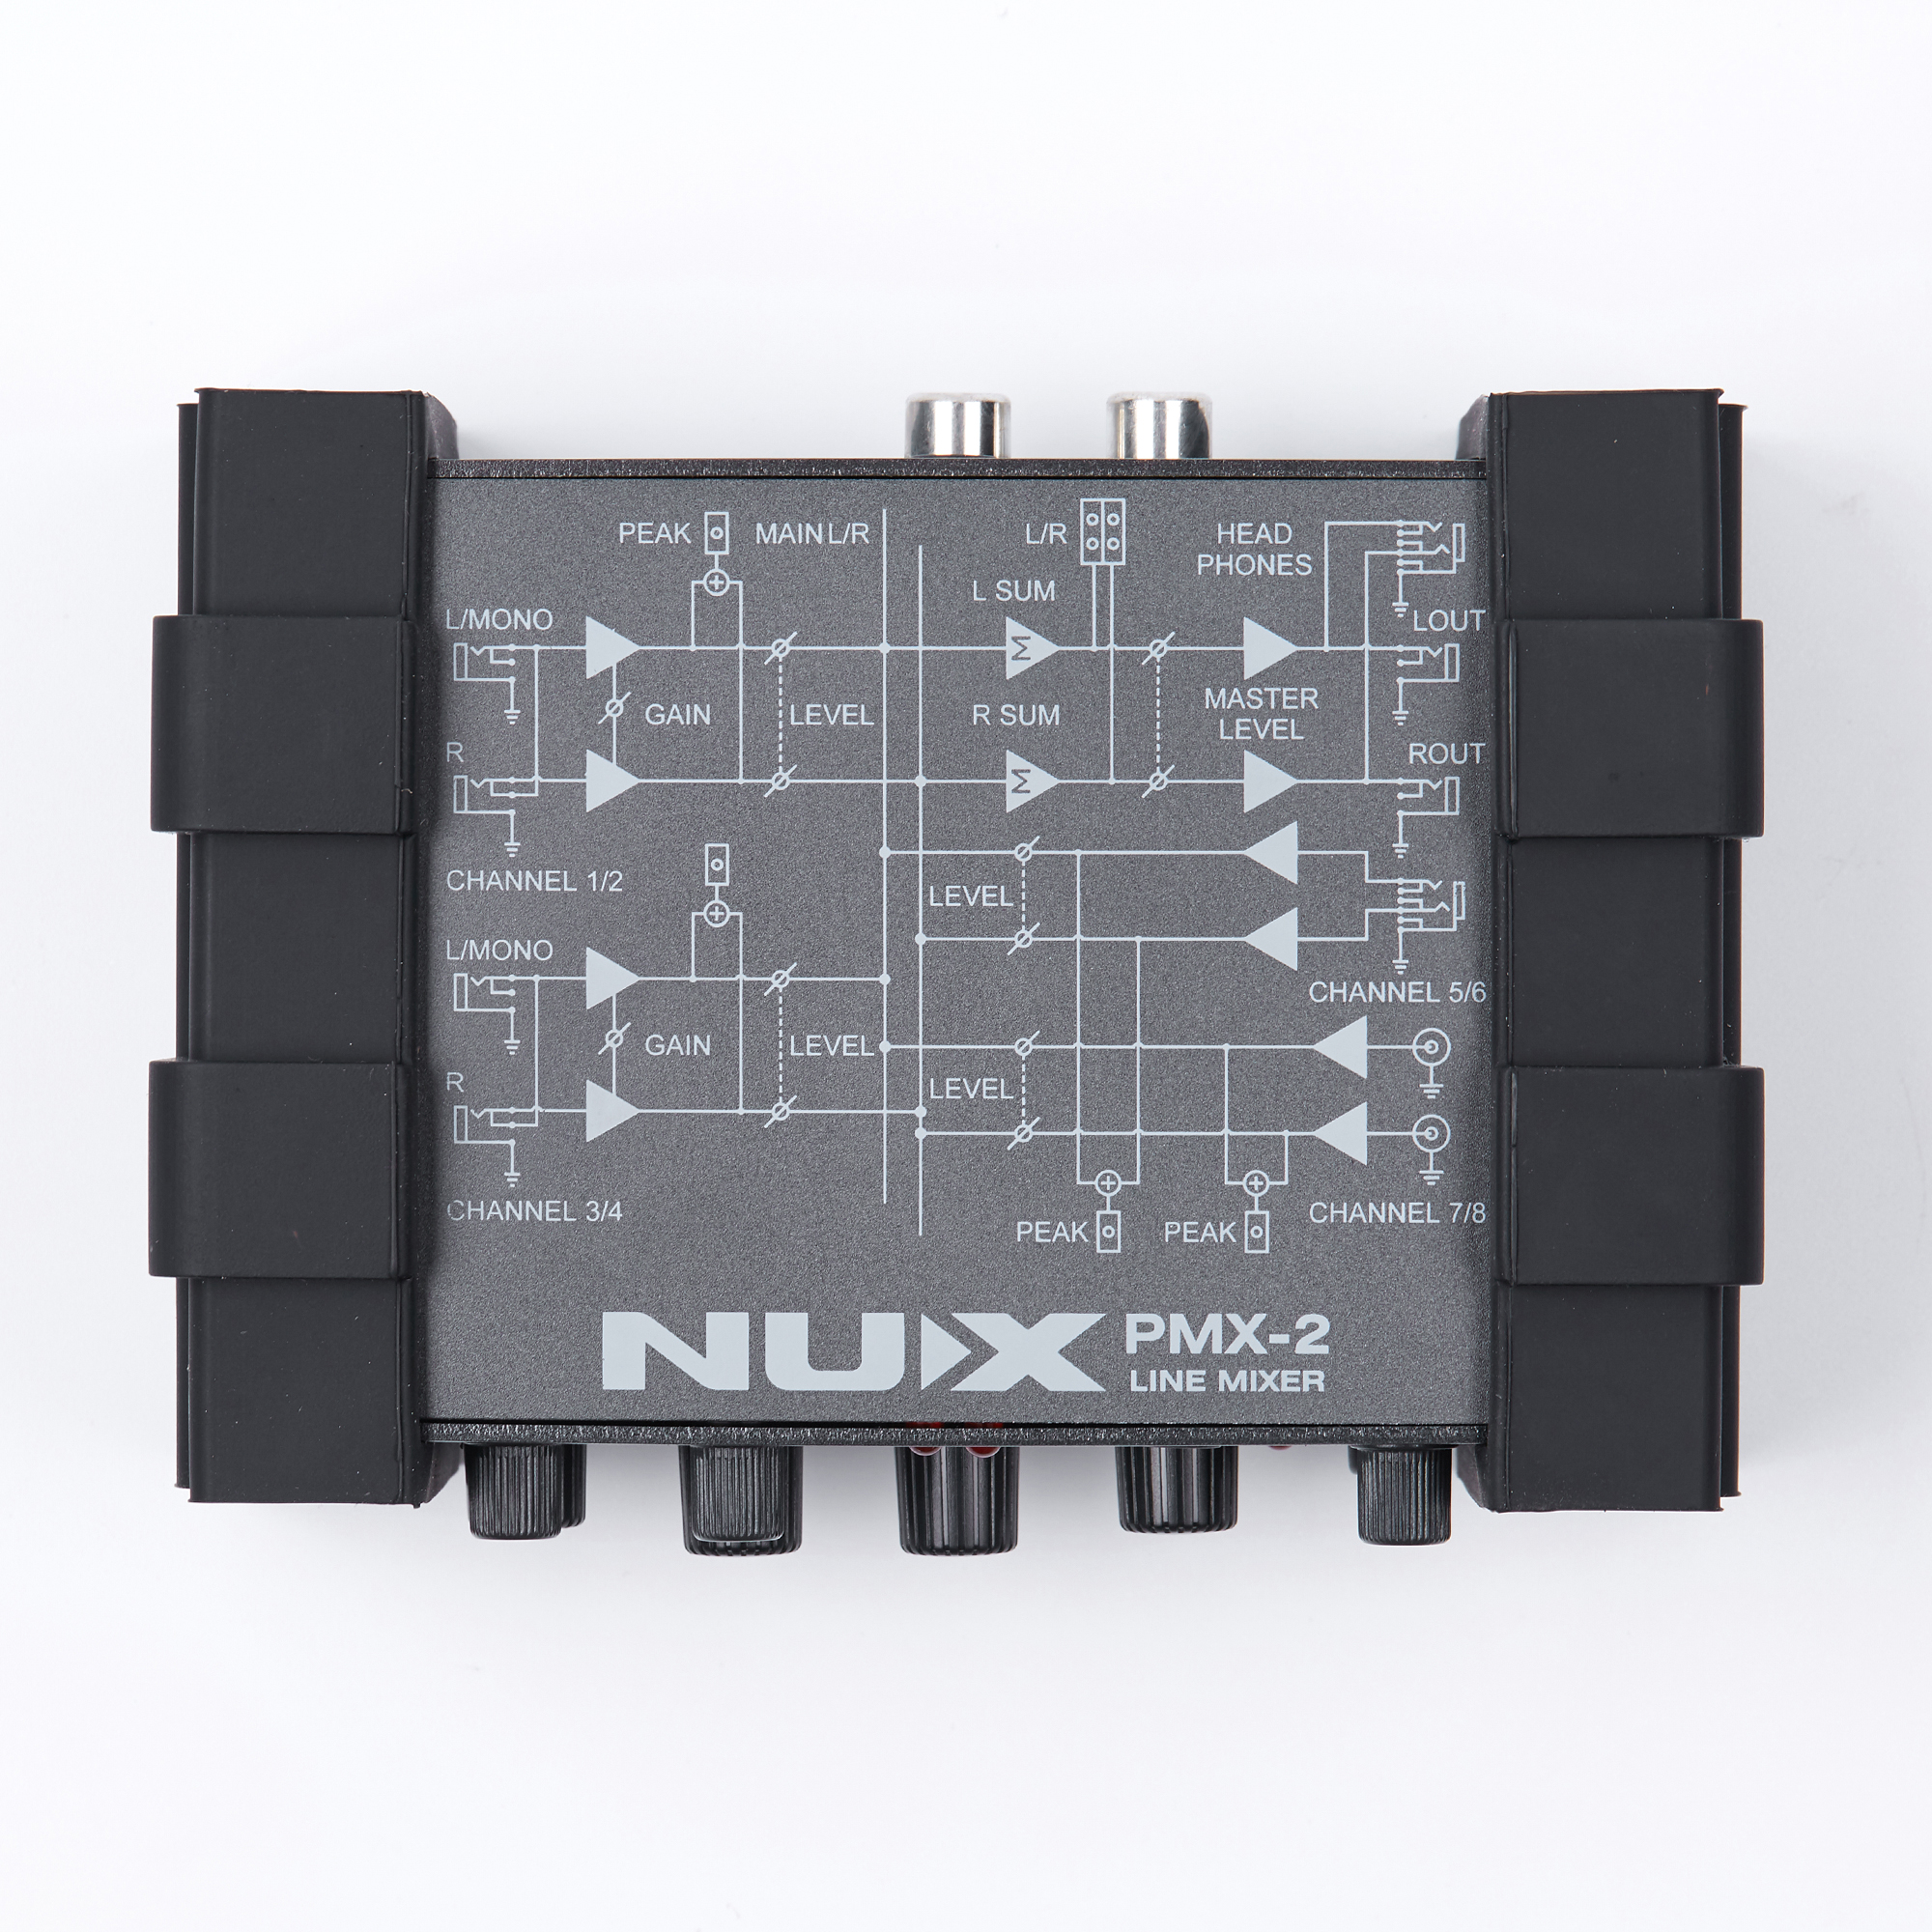 Gain Control 8 Inputs and 2 Outputs NUX PMX-2 Multi-Channel Mini Mixer 30 Musical Instruments Accessories for Guitar Bass Player щетка для мытья колес